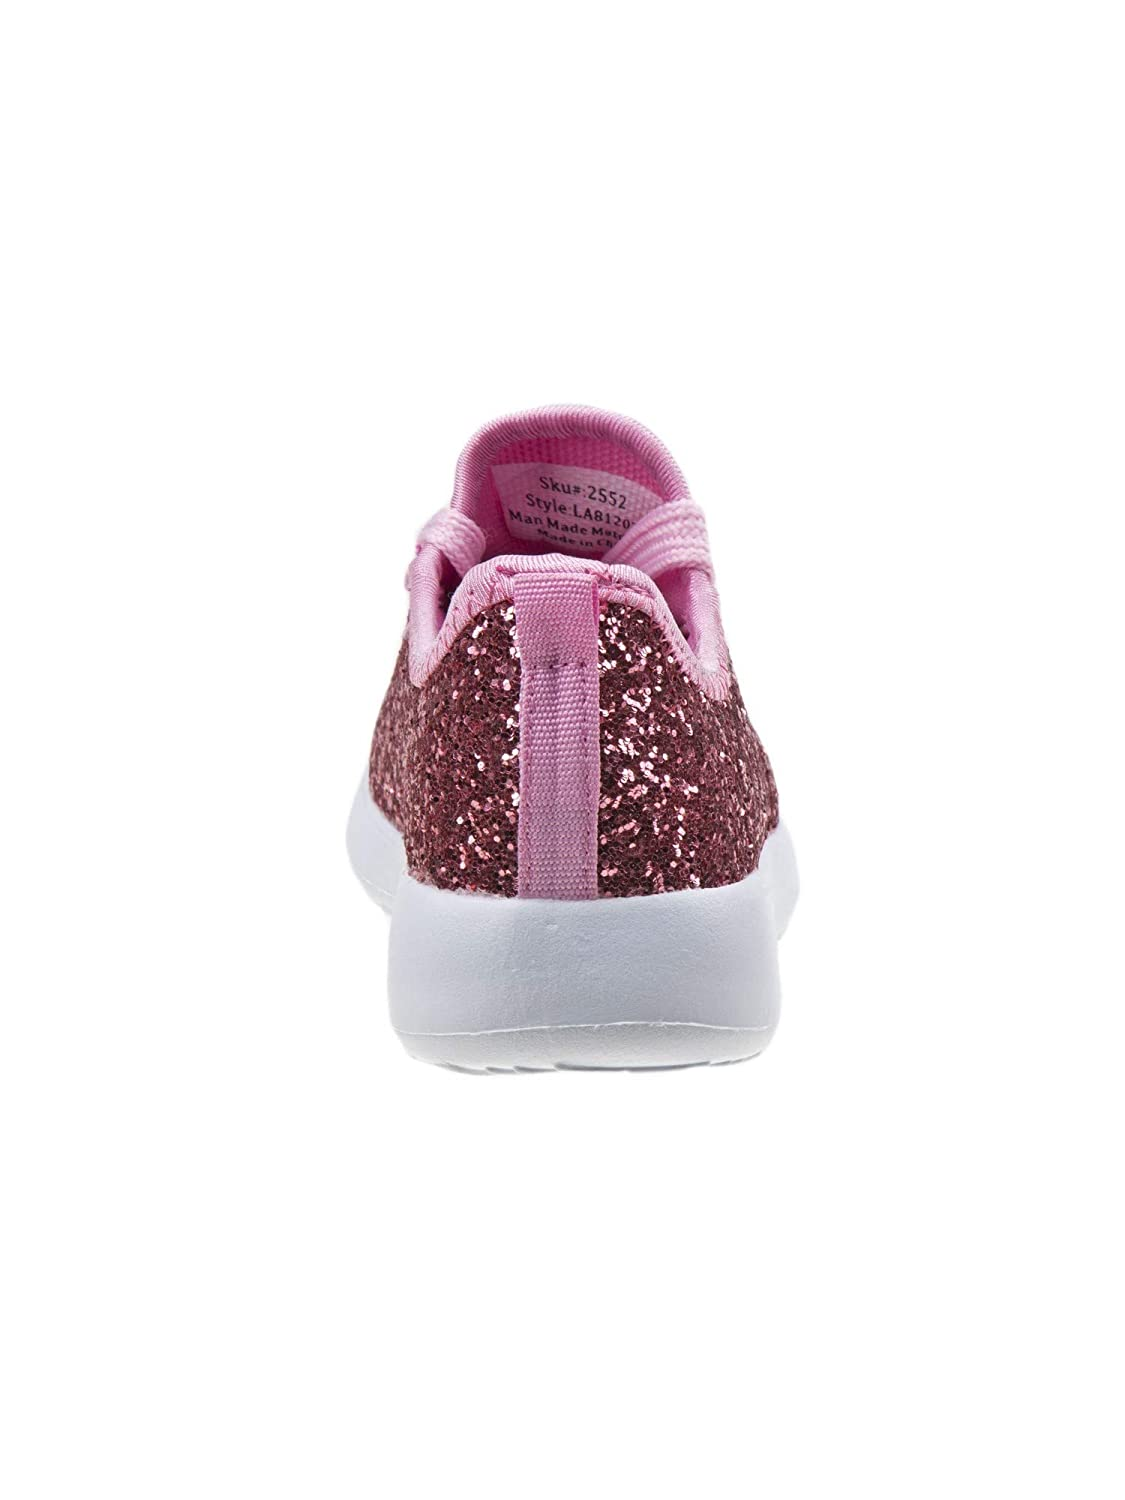 Laura Ashley Girls Pink Glitter Texture Lace-Up Trendy Sneakers 11-12 Kids